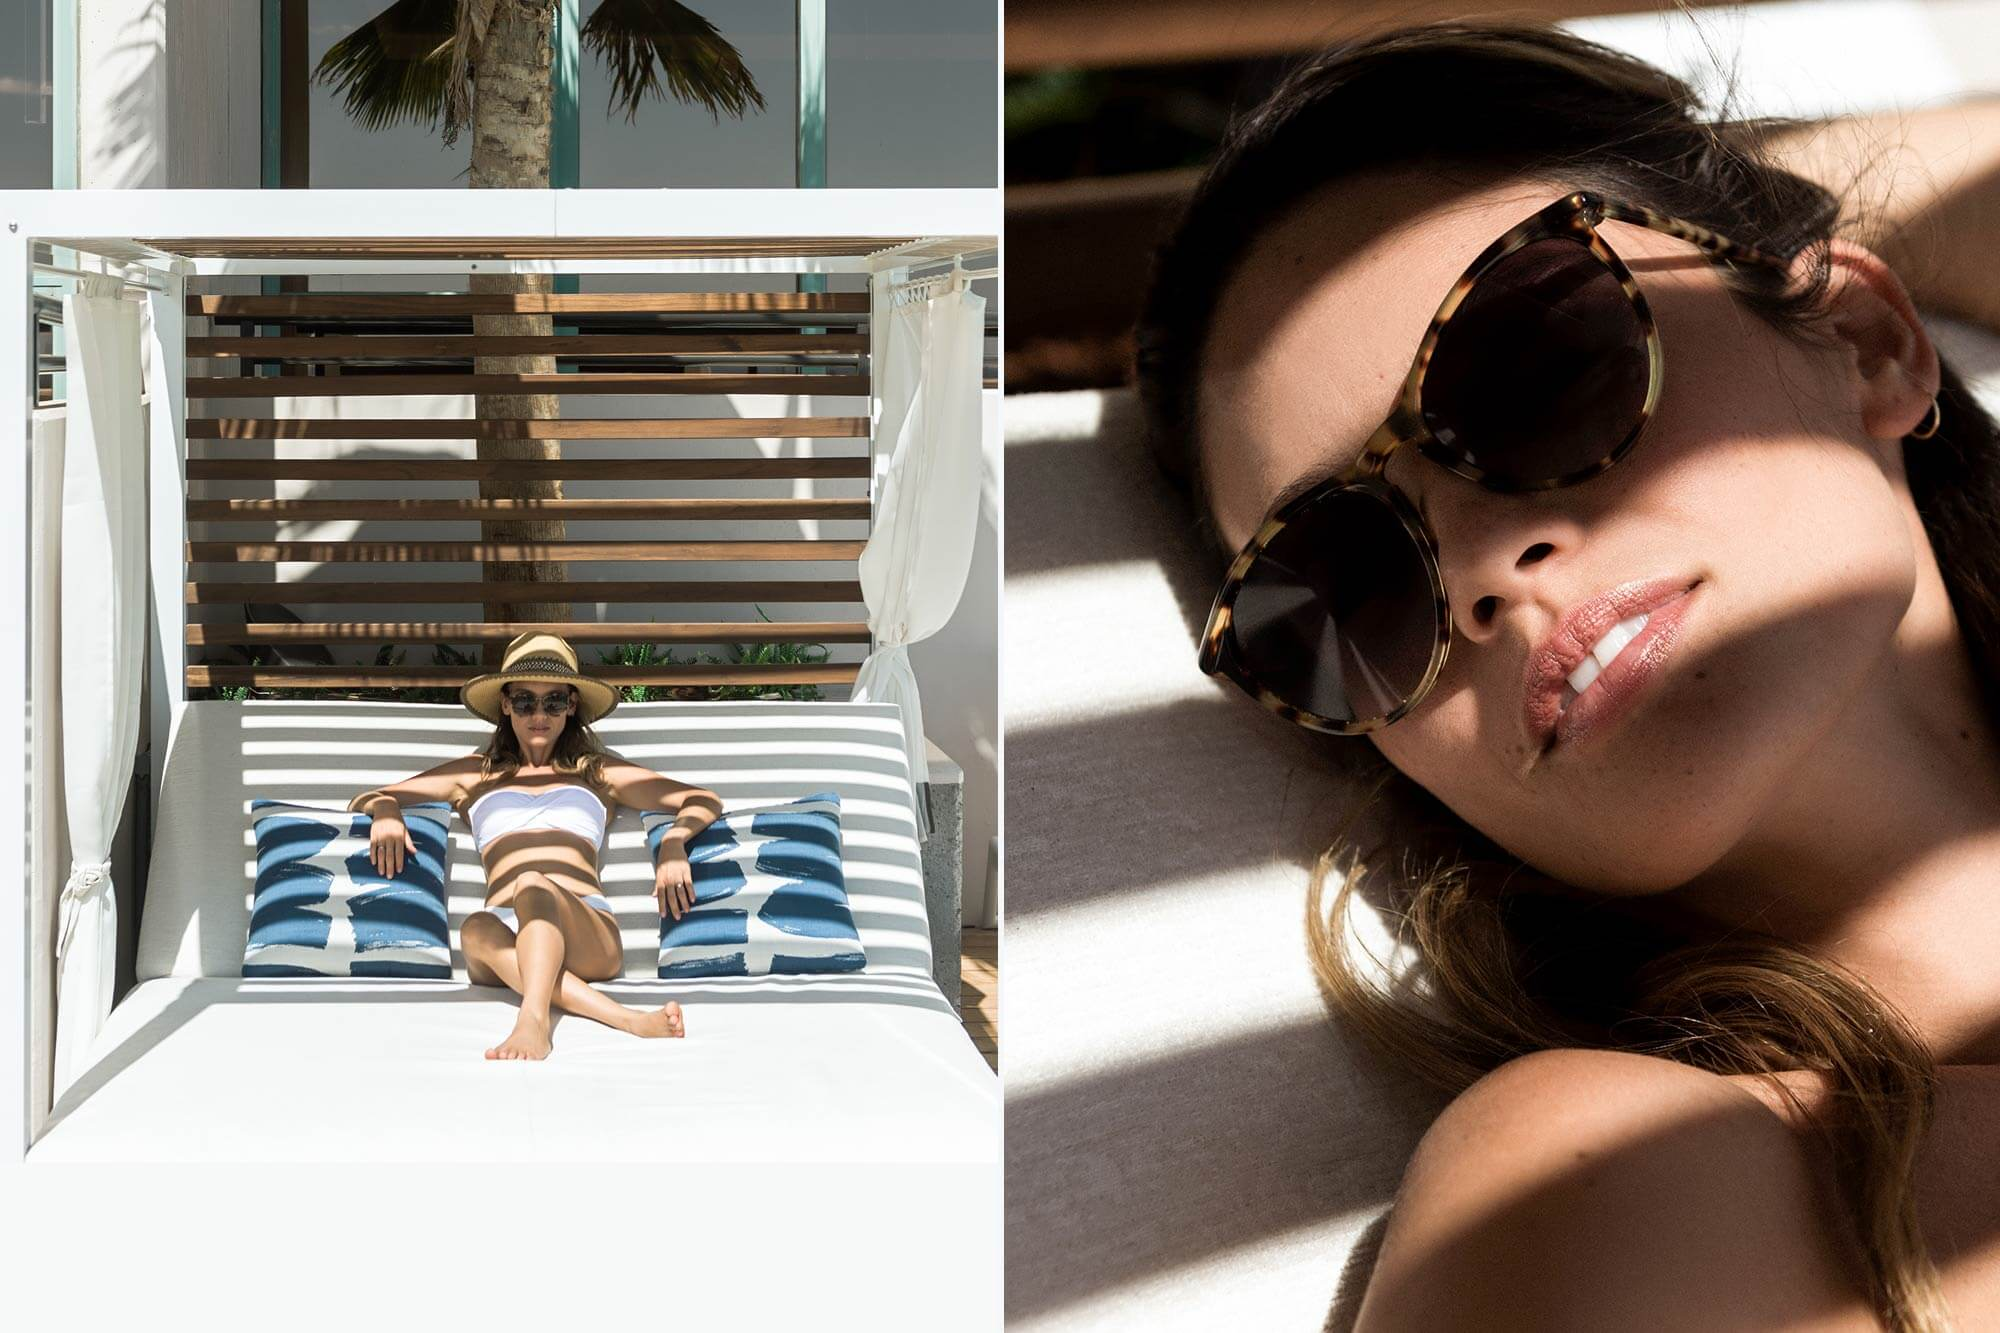 Two images of a woman lounging in a cabana chair.